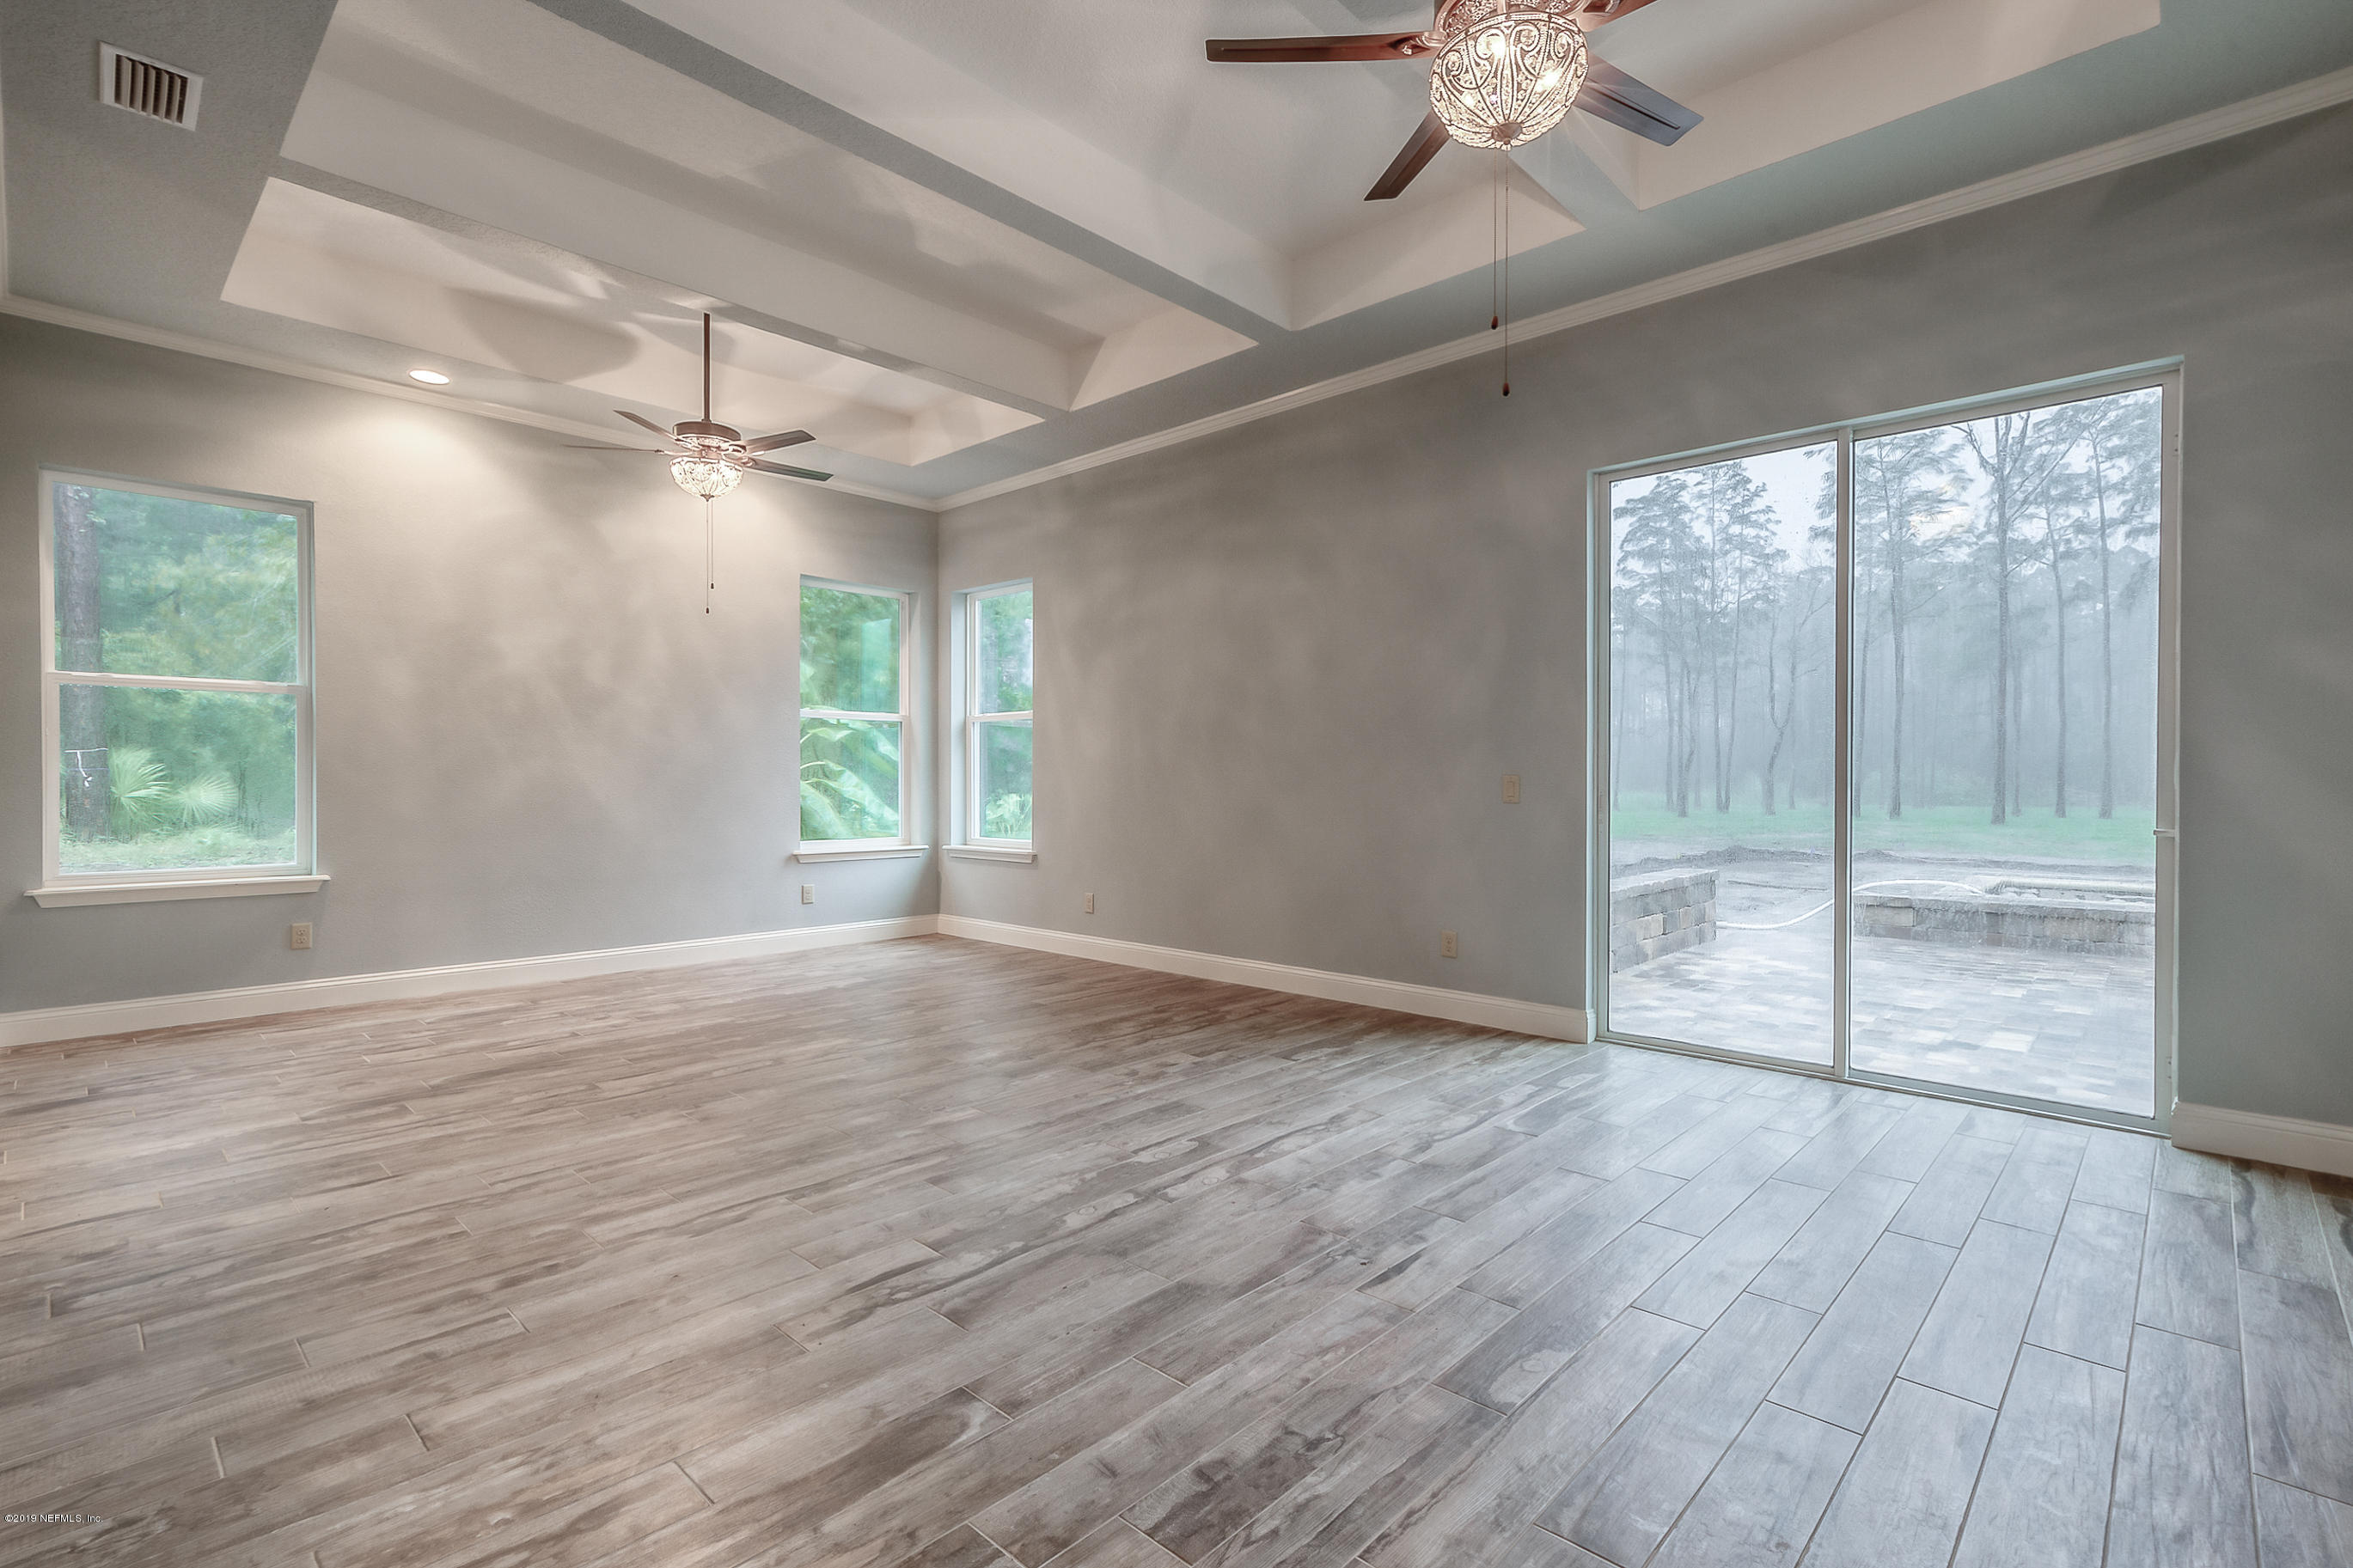 4162-1 RIVERVIEW, GREEN COVE SPRINGS, FLORIDA 32043, 4 Bedrooms Bedrooms, ,3 BathroomsBathrooms,Residential,For sale,RIVERVIEW,1016413